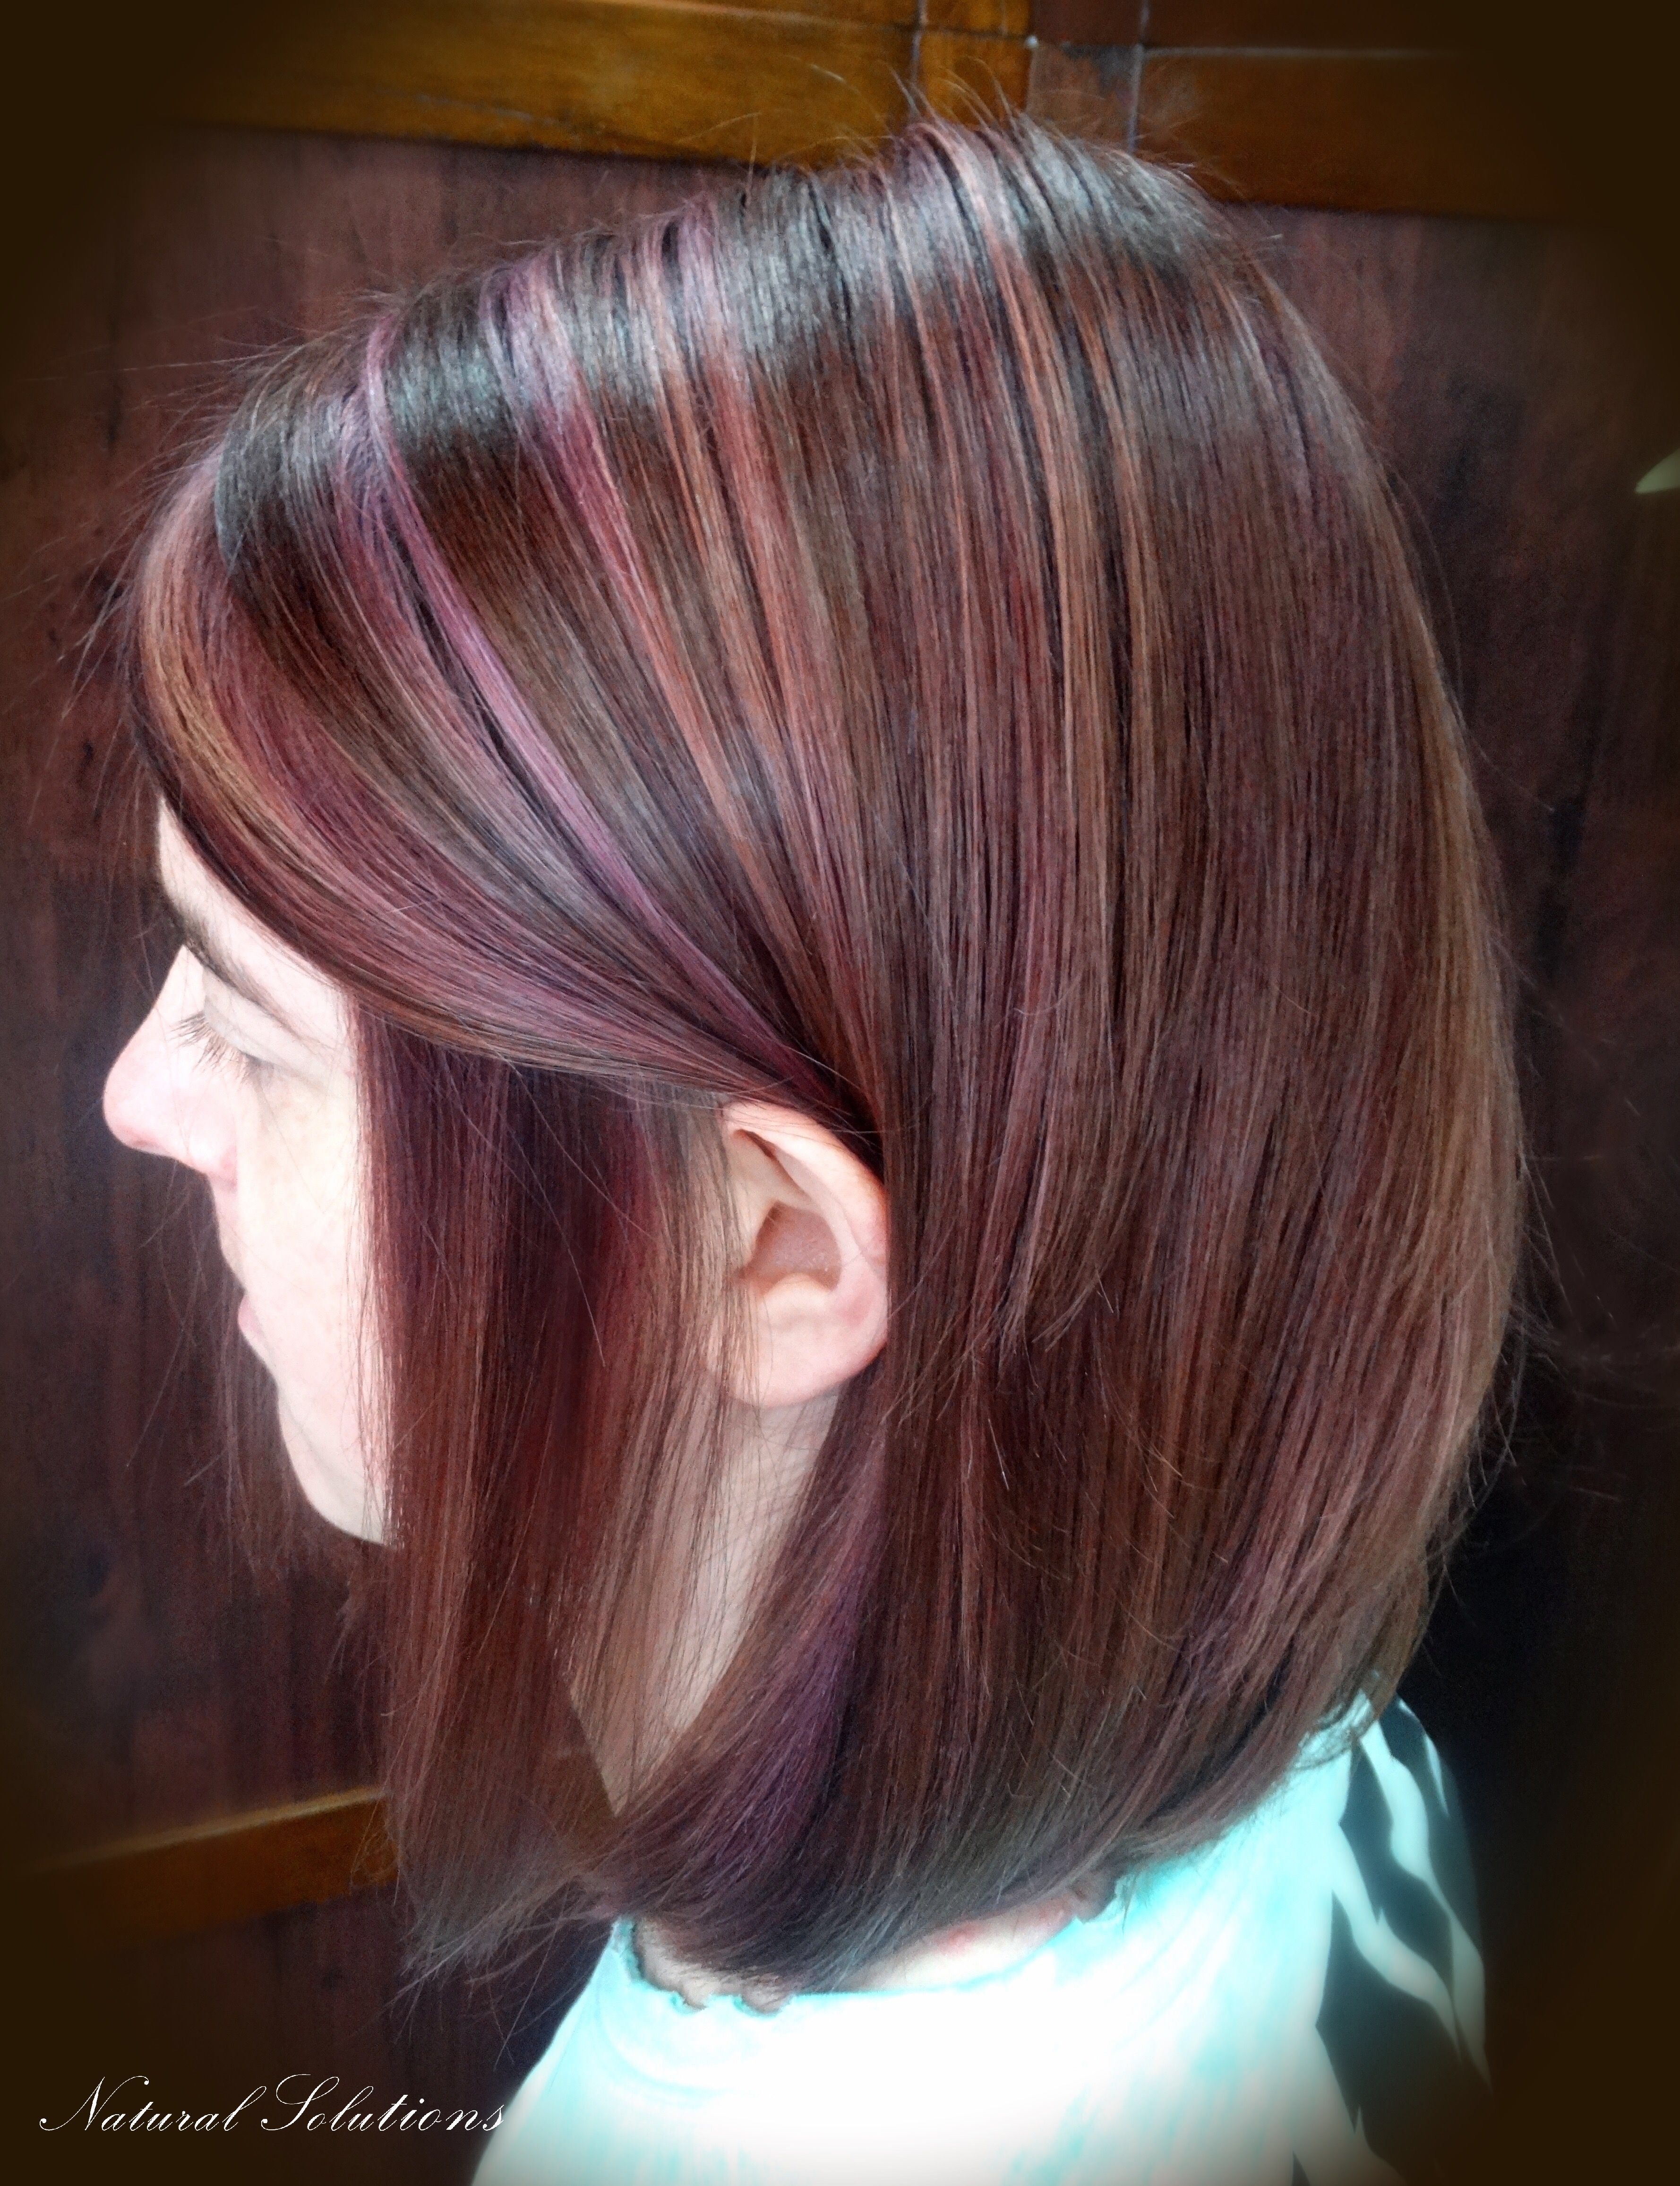 Ammonia Free Ppd Free Hair Color At Natural Solutions In Salem Ohio